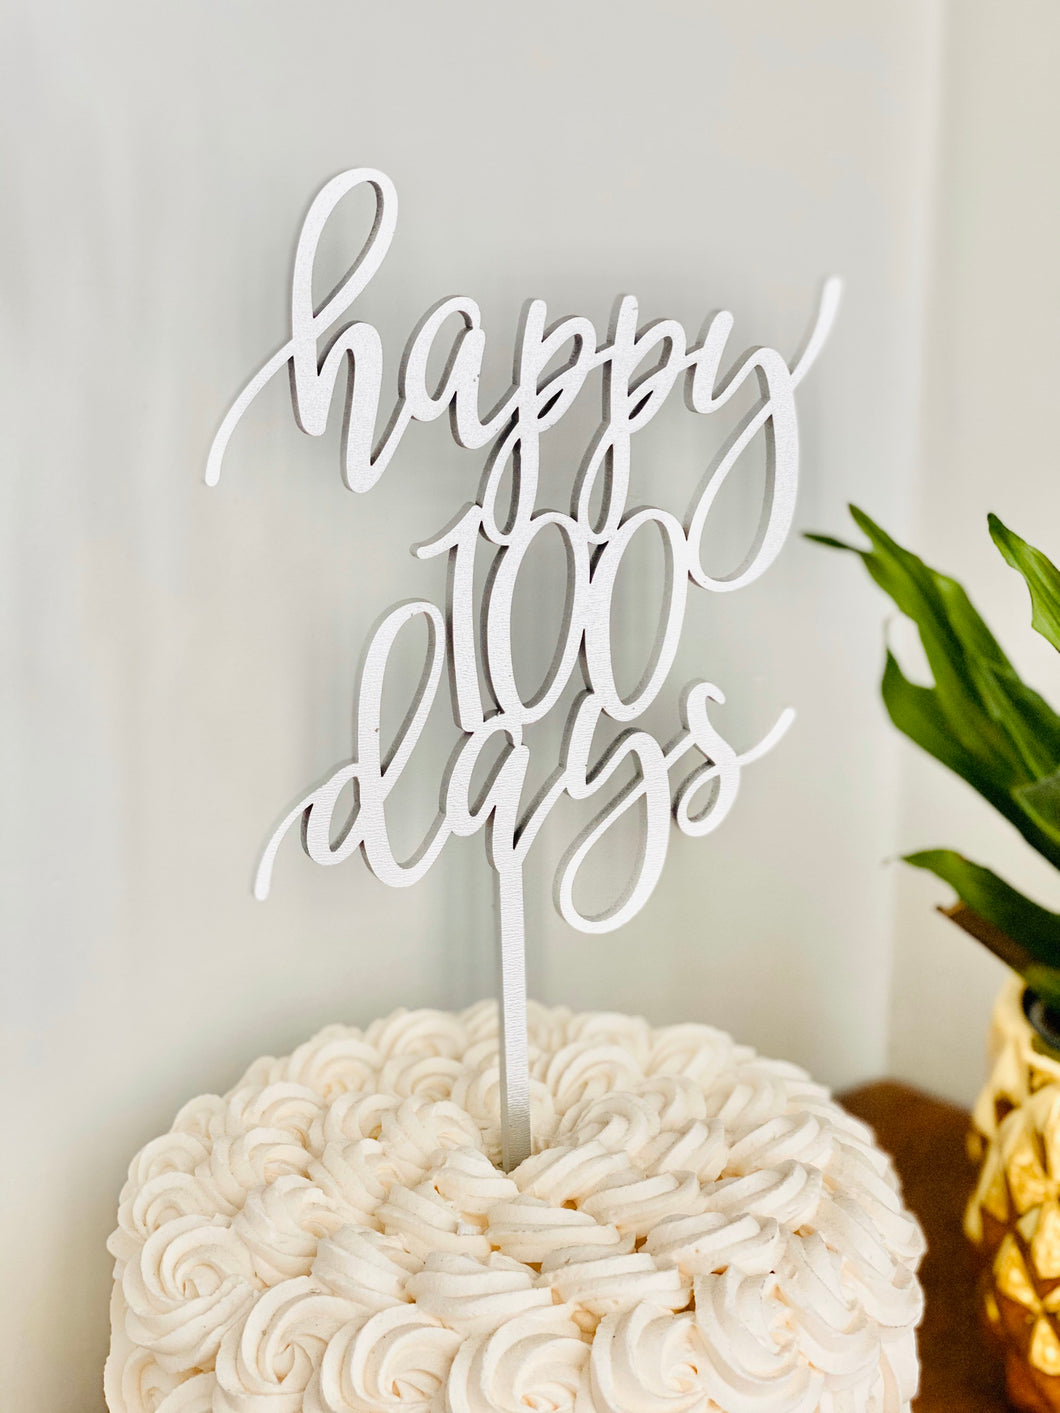 Happy 100 Days Cake Topper, 5.5